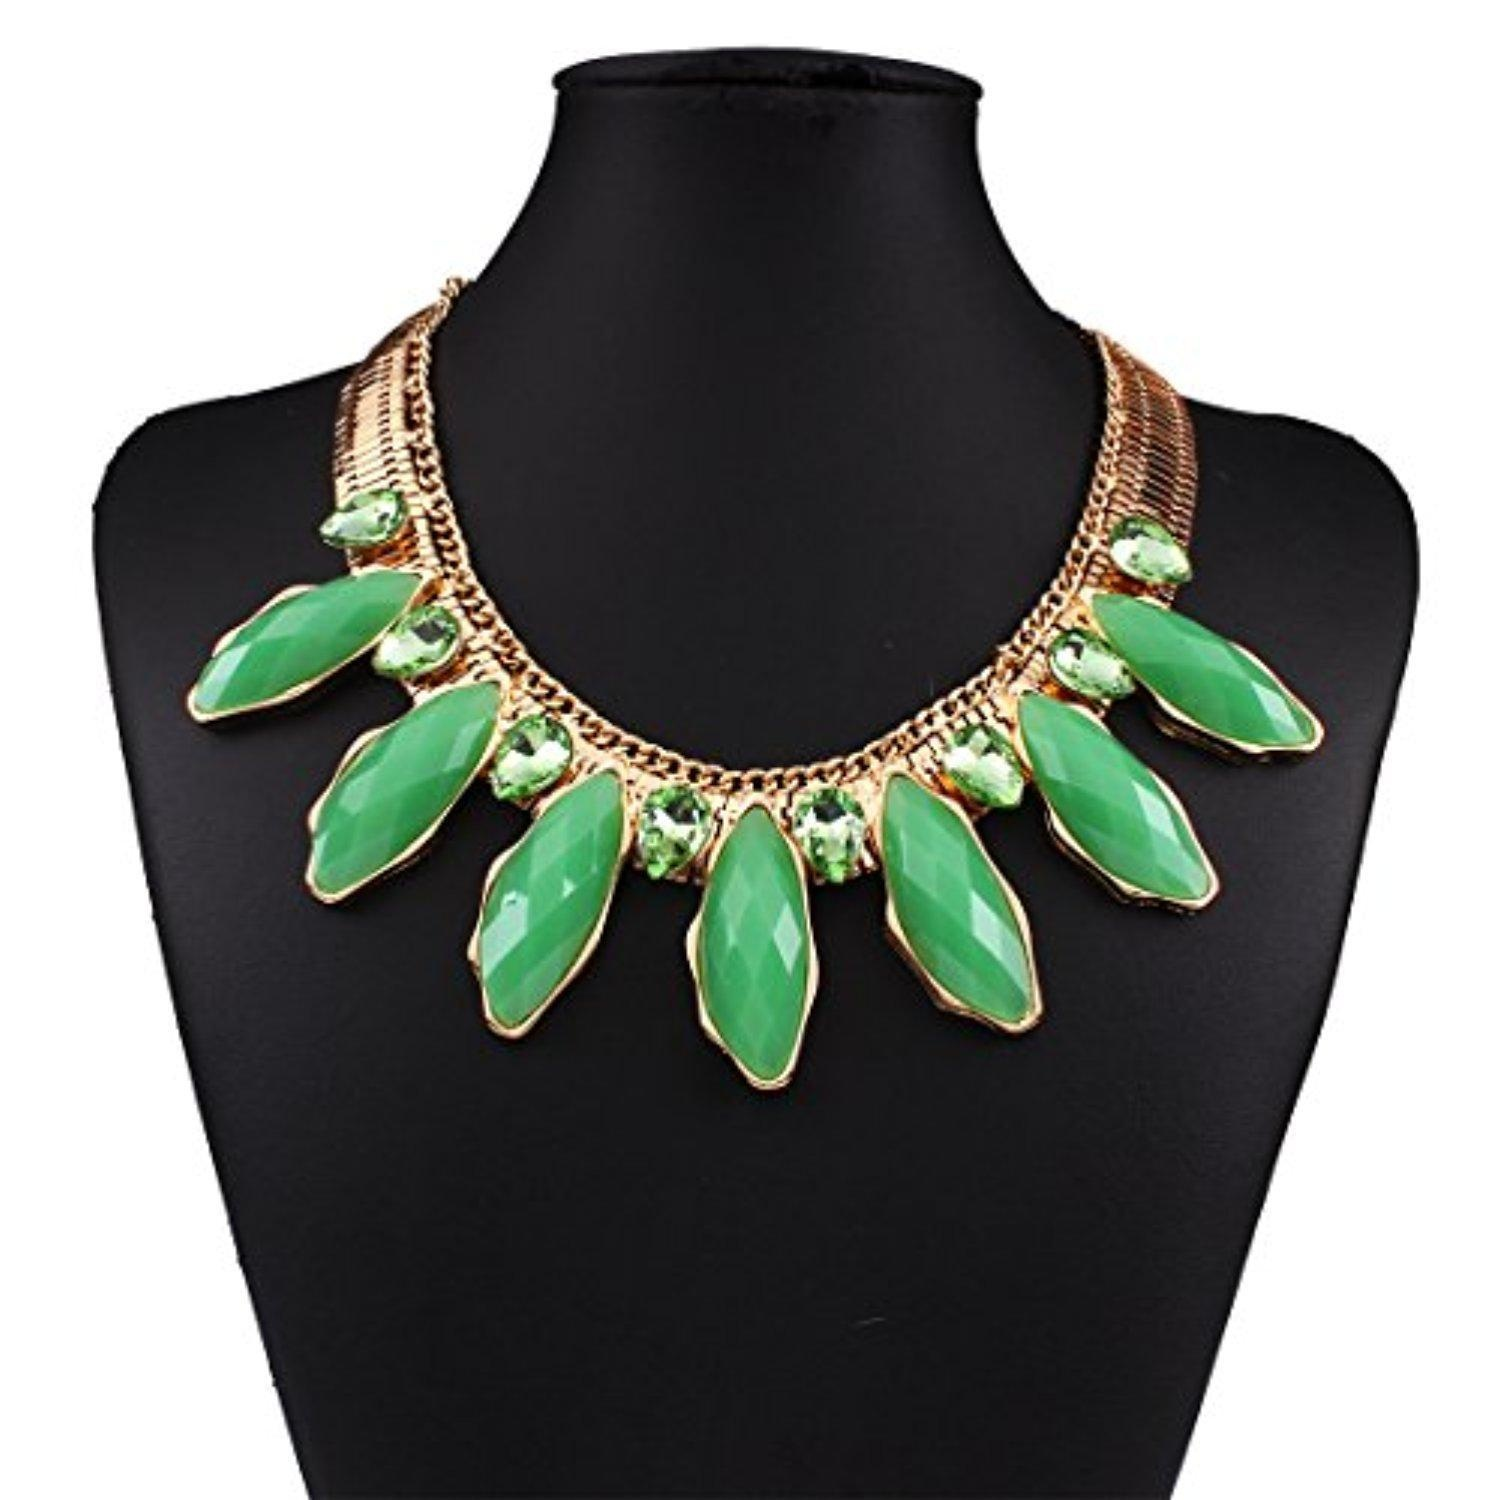 ARICO Resin Necklace Snake Chain Statement Necklace Crystal Necklace Jewelry NE795